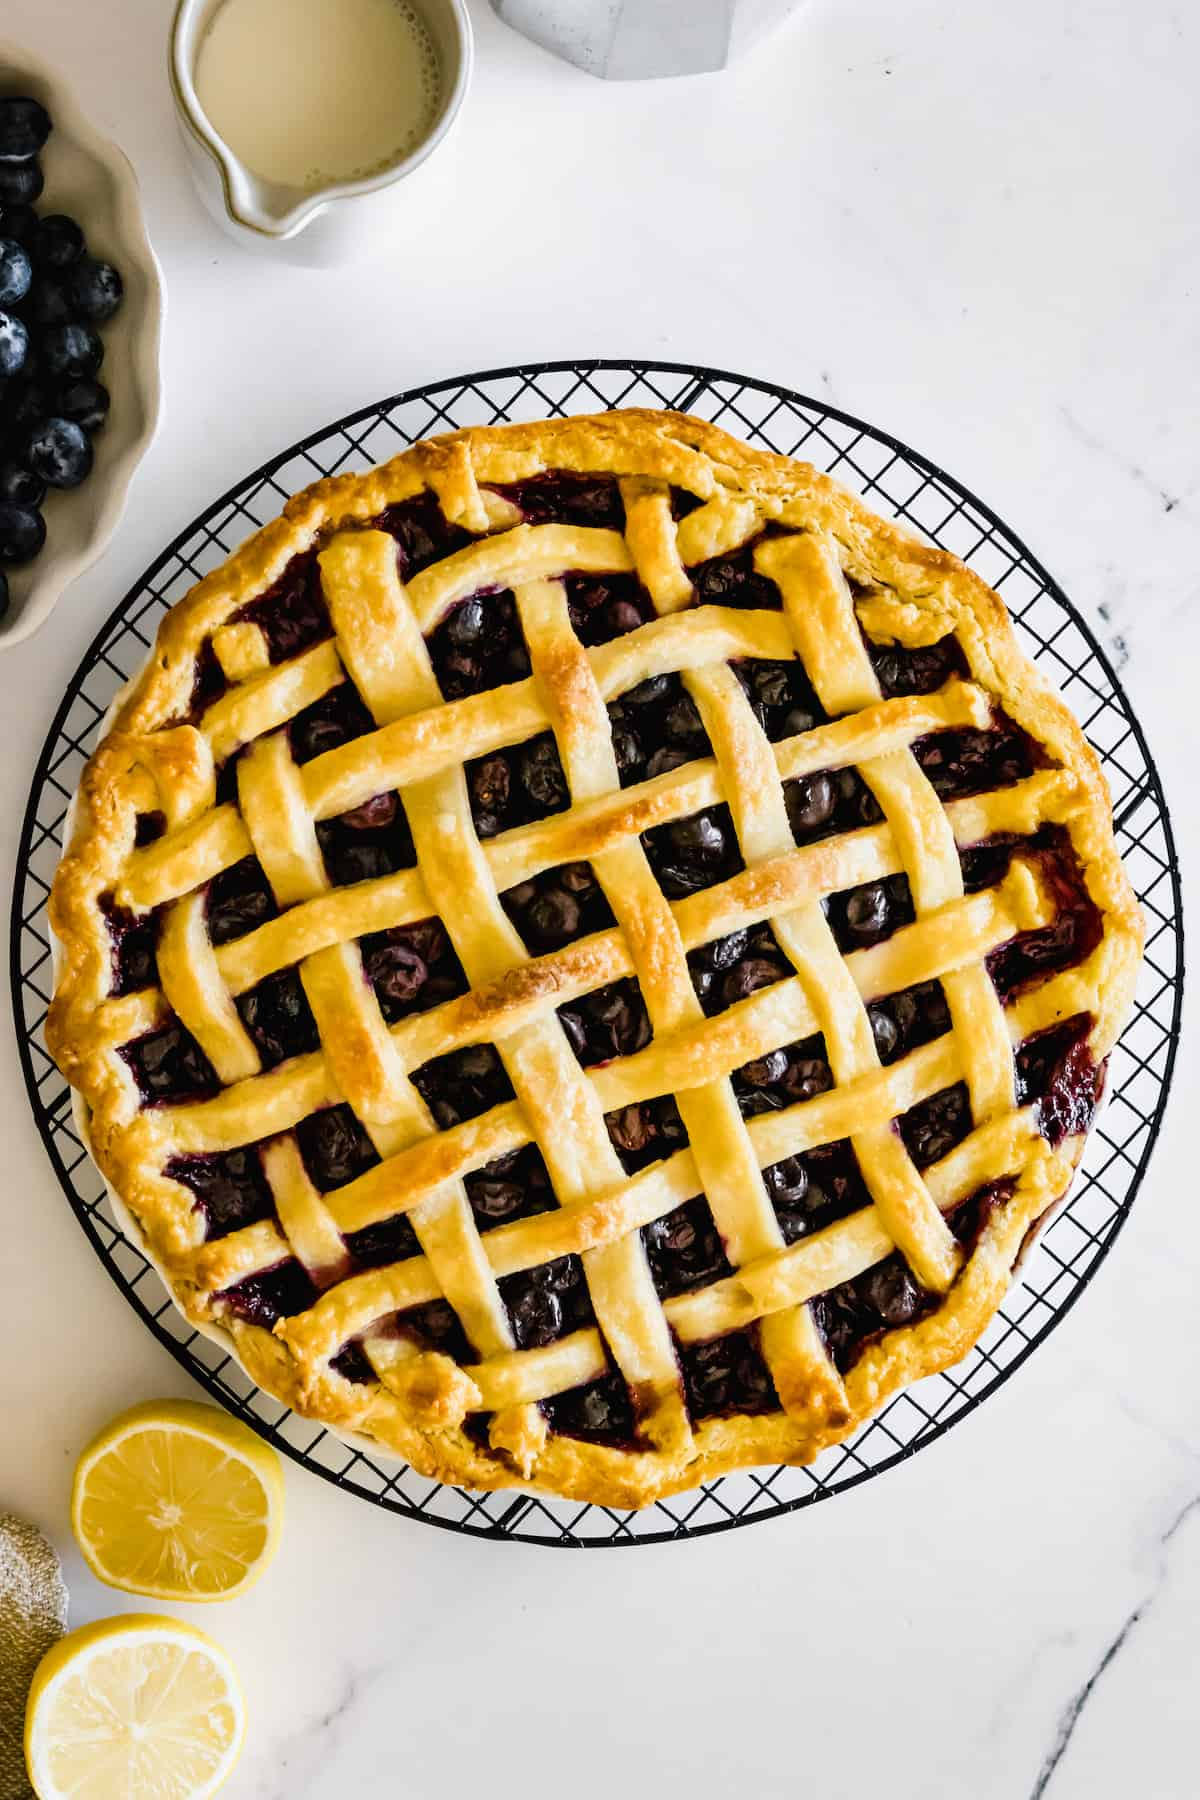 A Freshly Baked Blueberry Pie on a Circular Cooling Rack